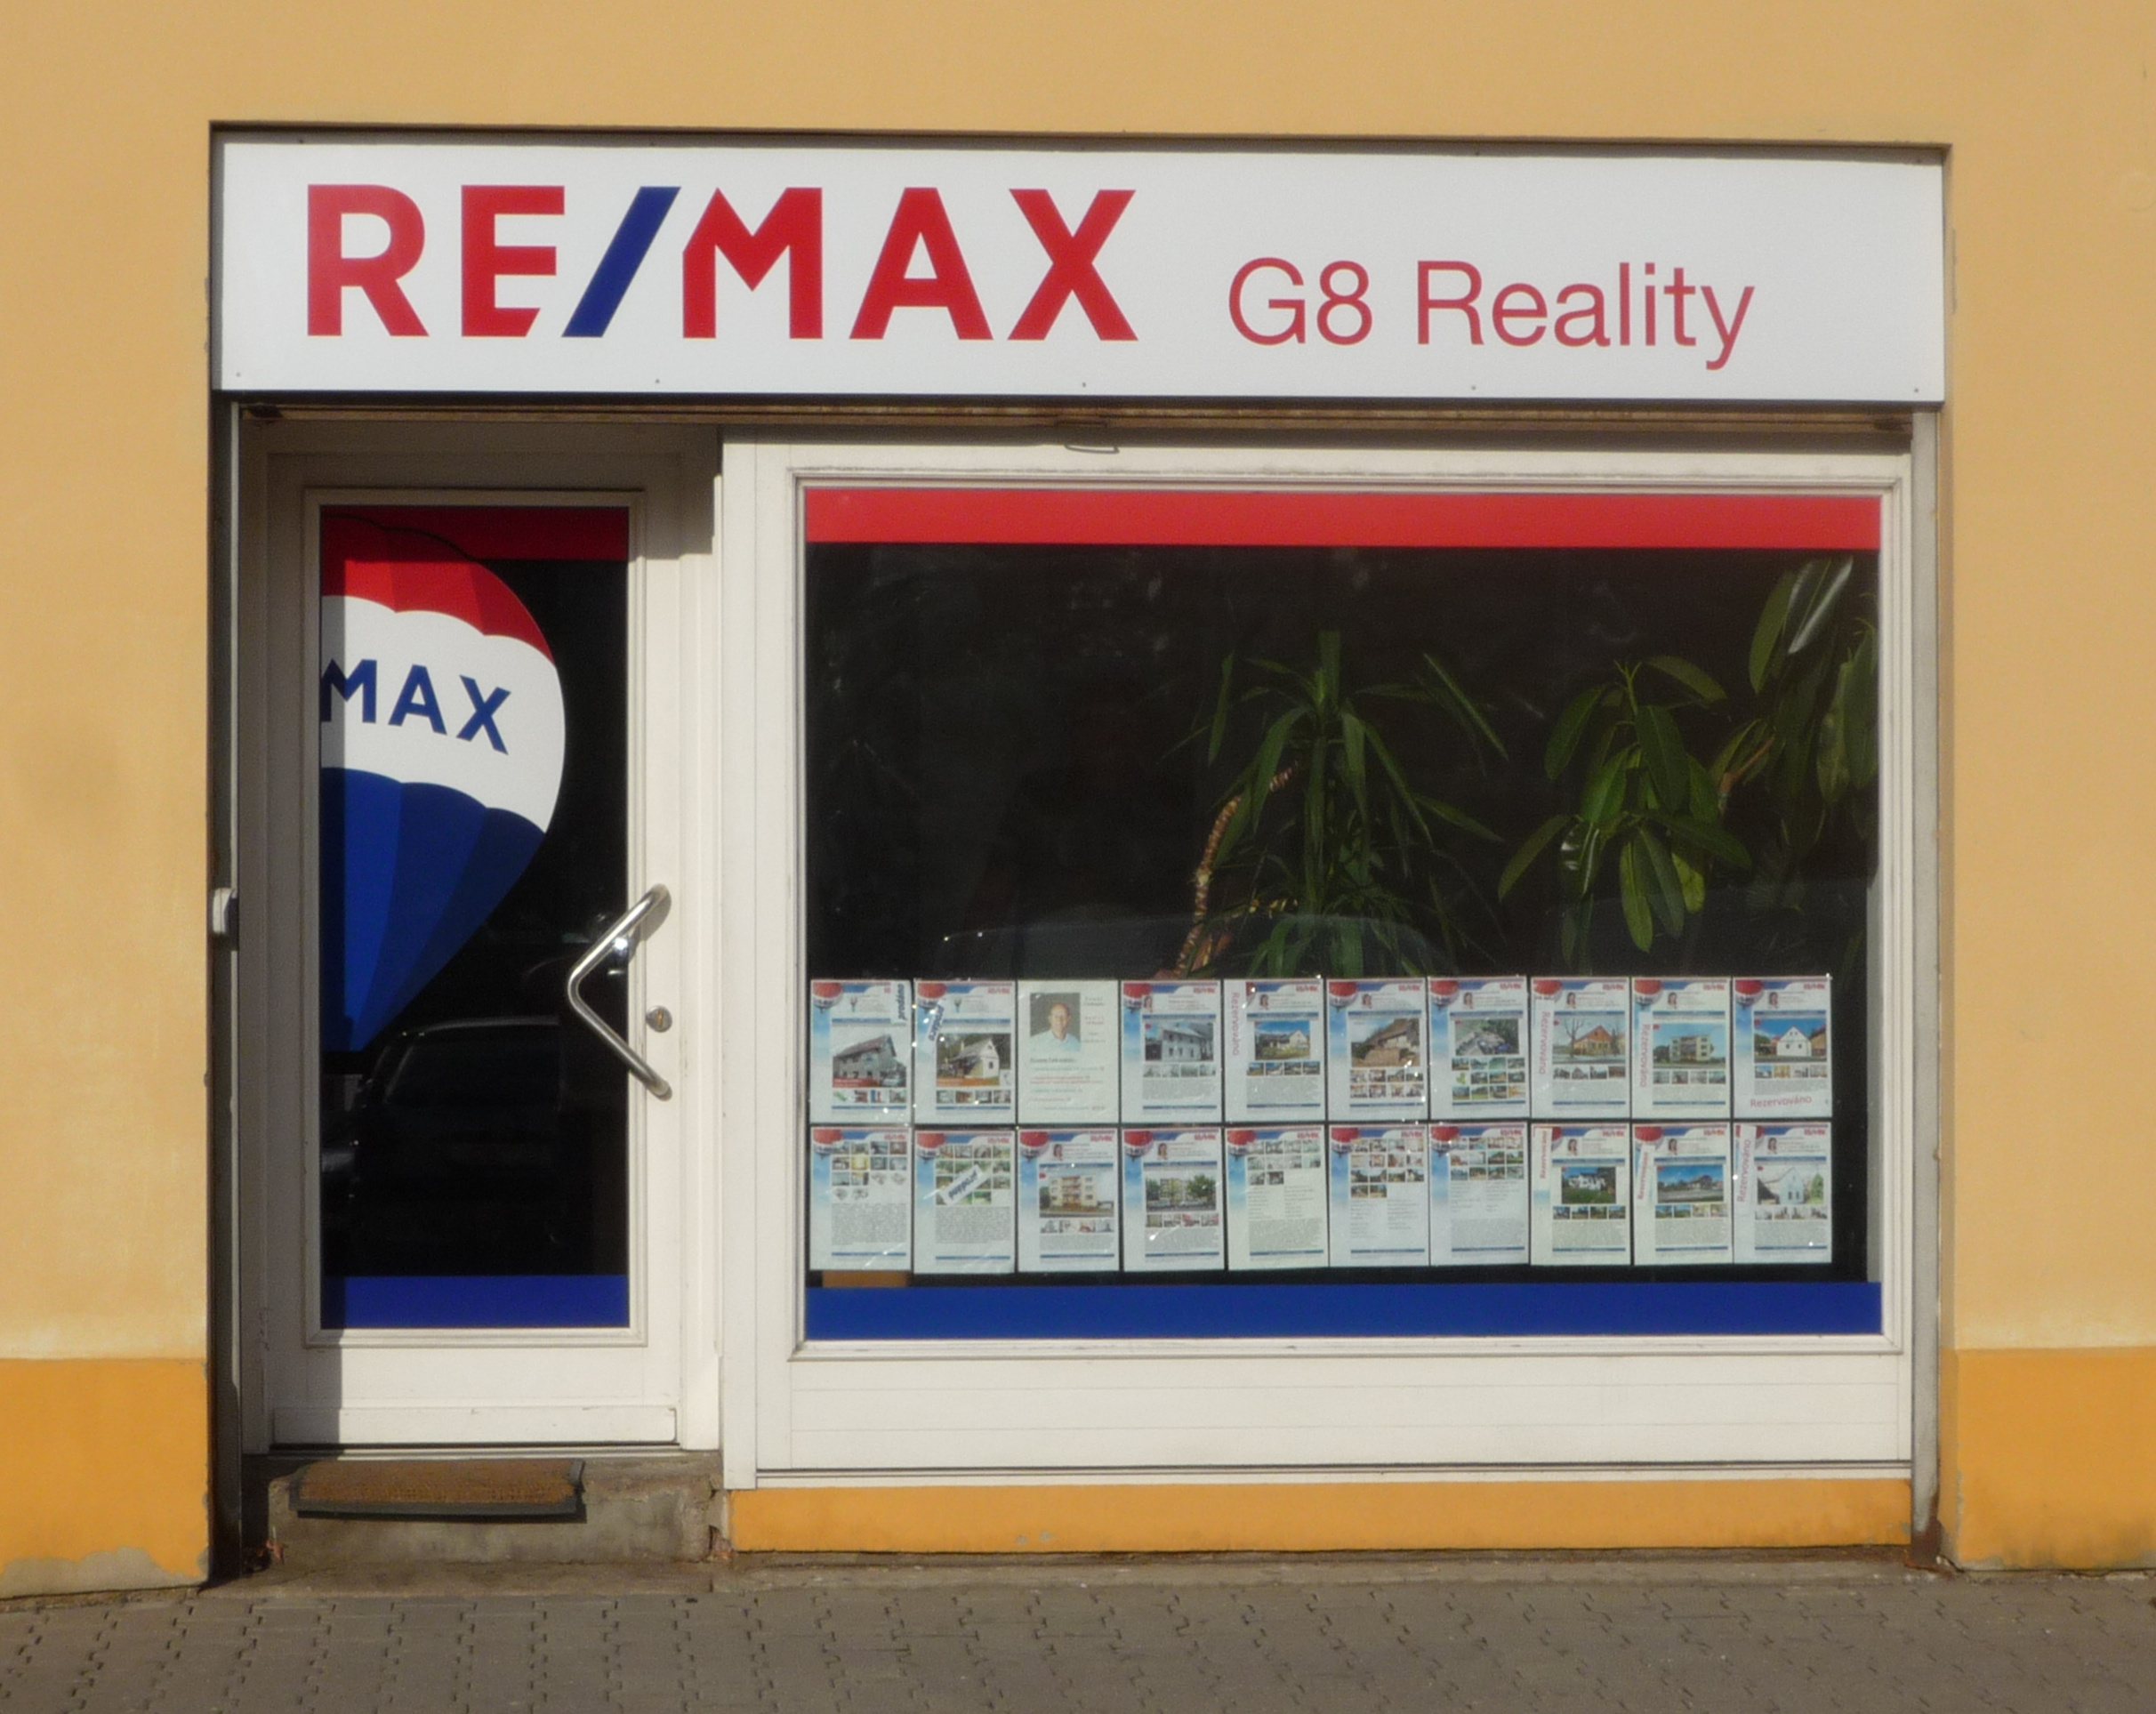 RE/MAX G8 Reality 2